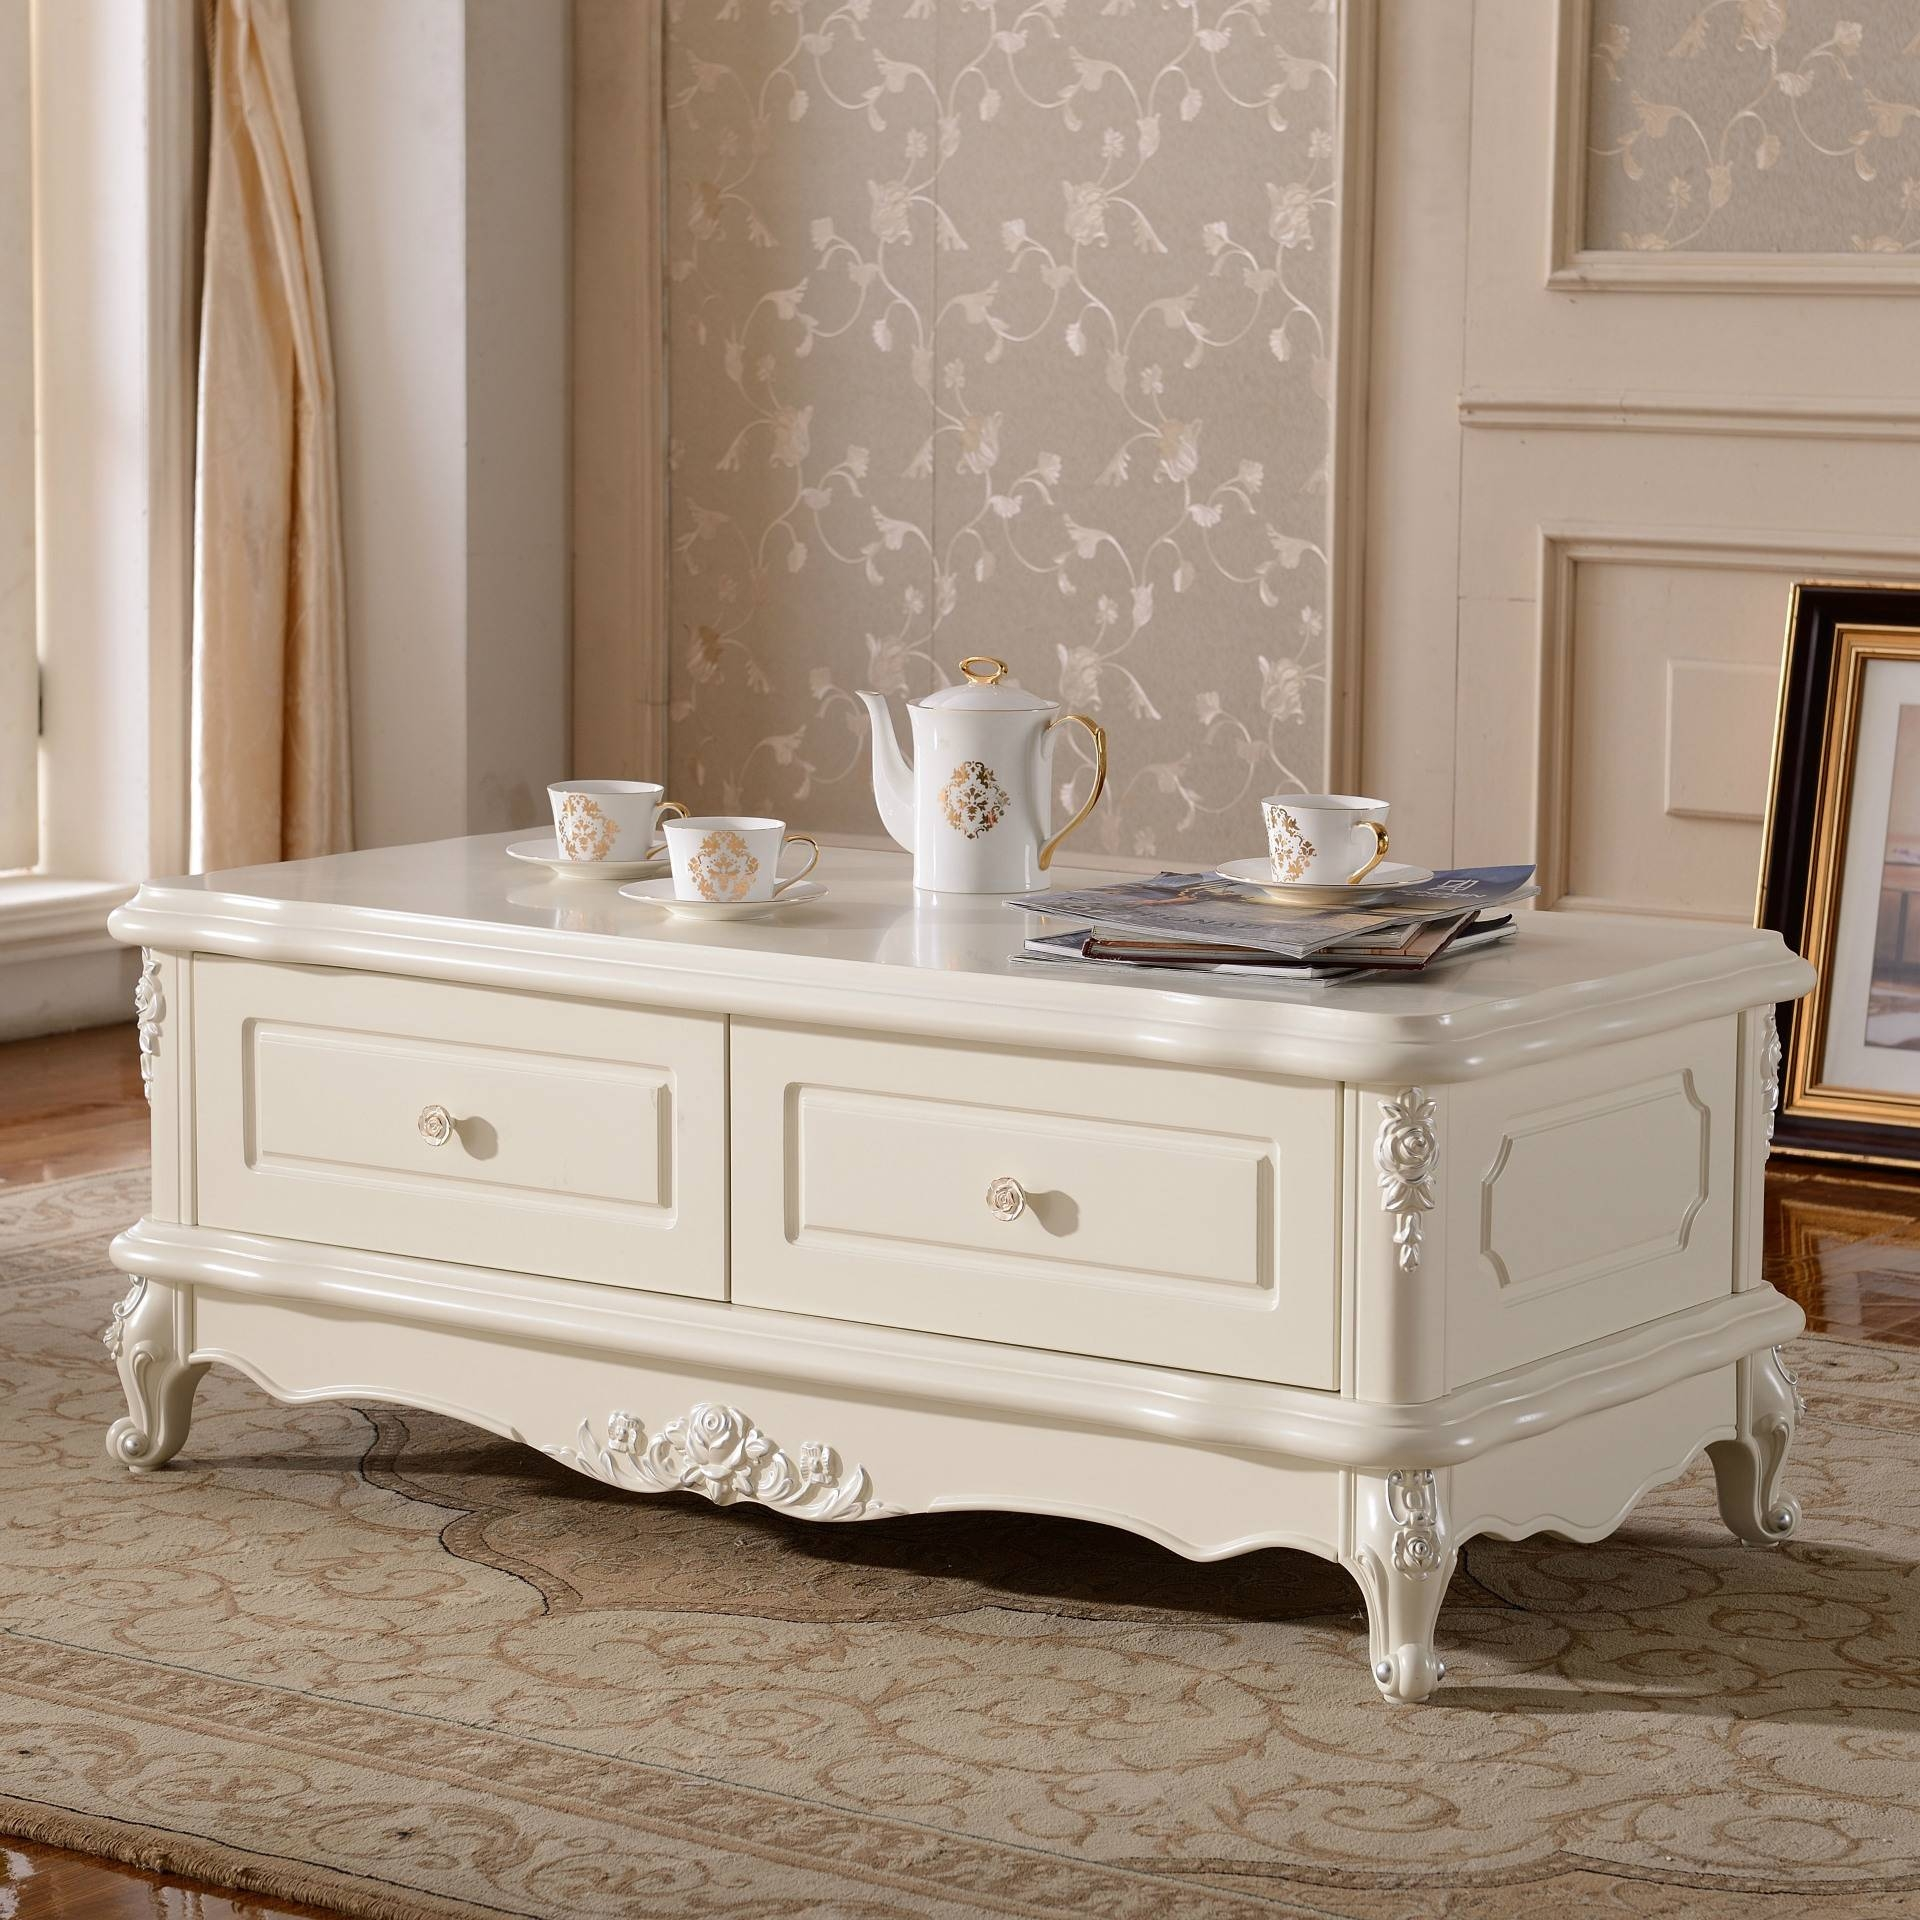 Hot Coffee Continental French Romantic French Carved Storage intended for White French Coffee Tables (Image 24 of 30)